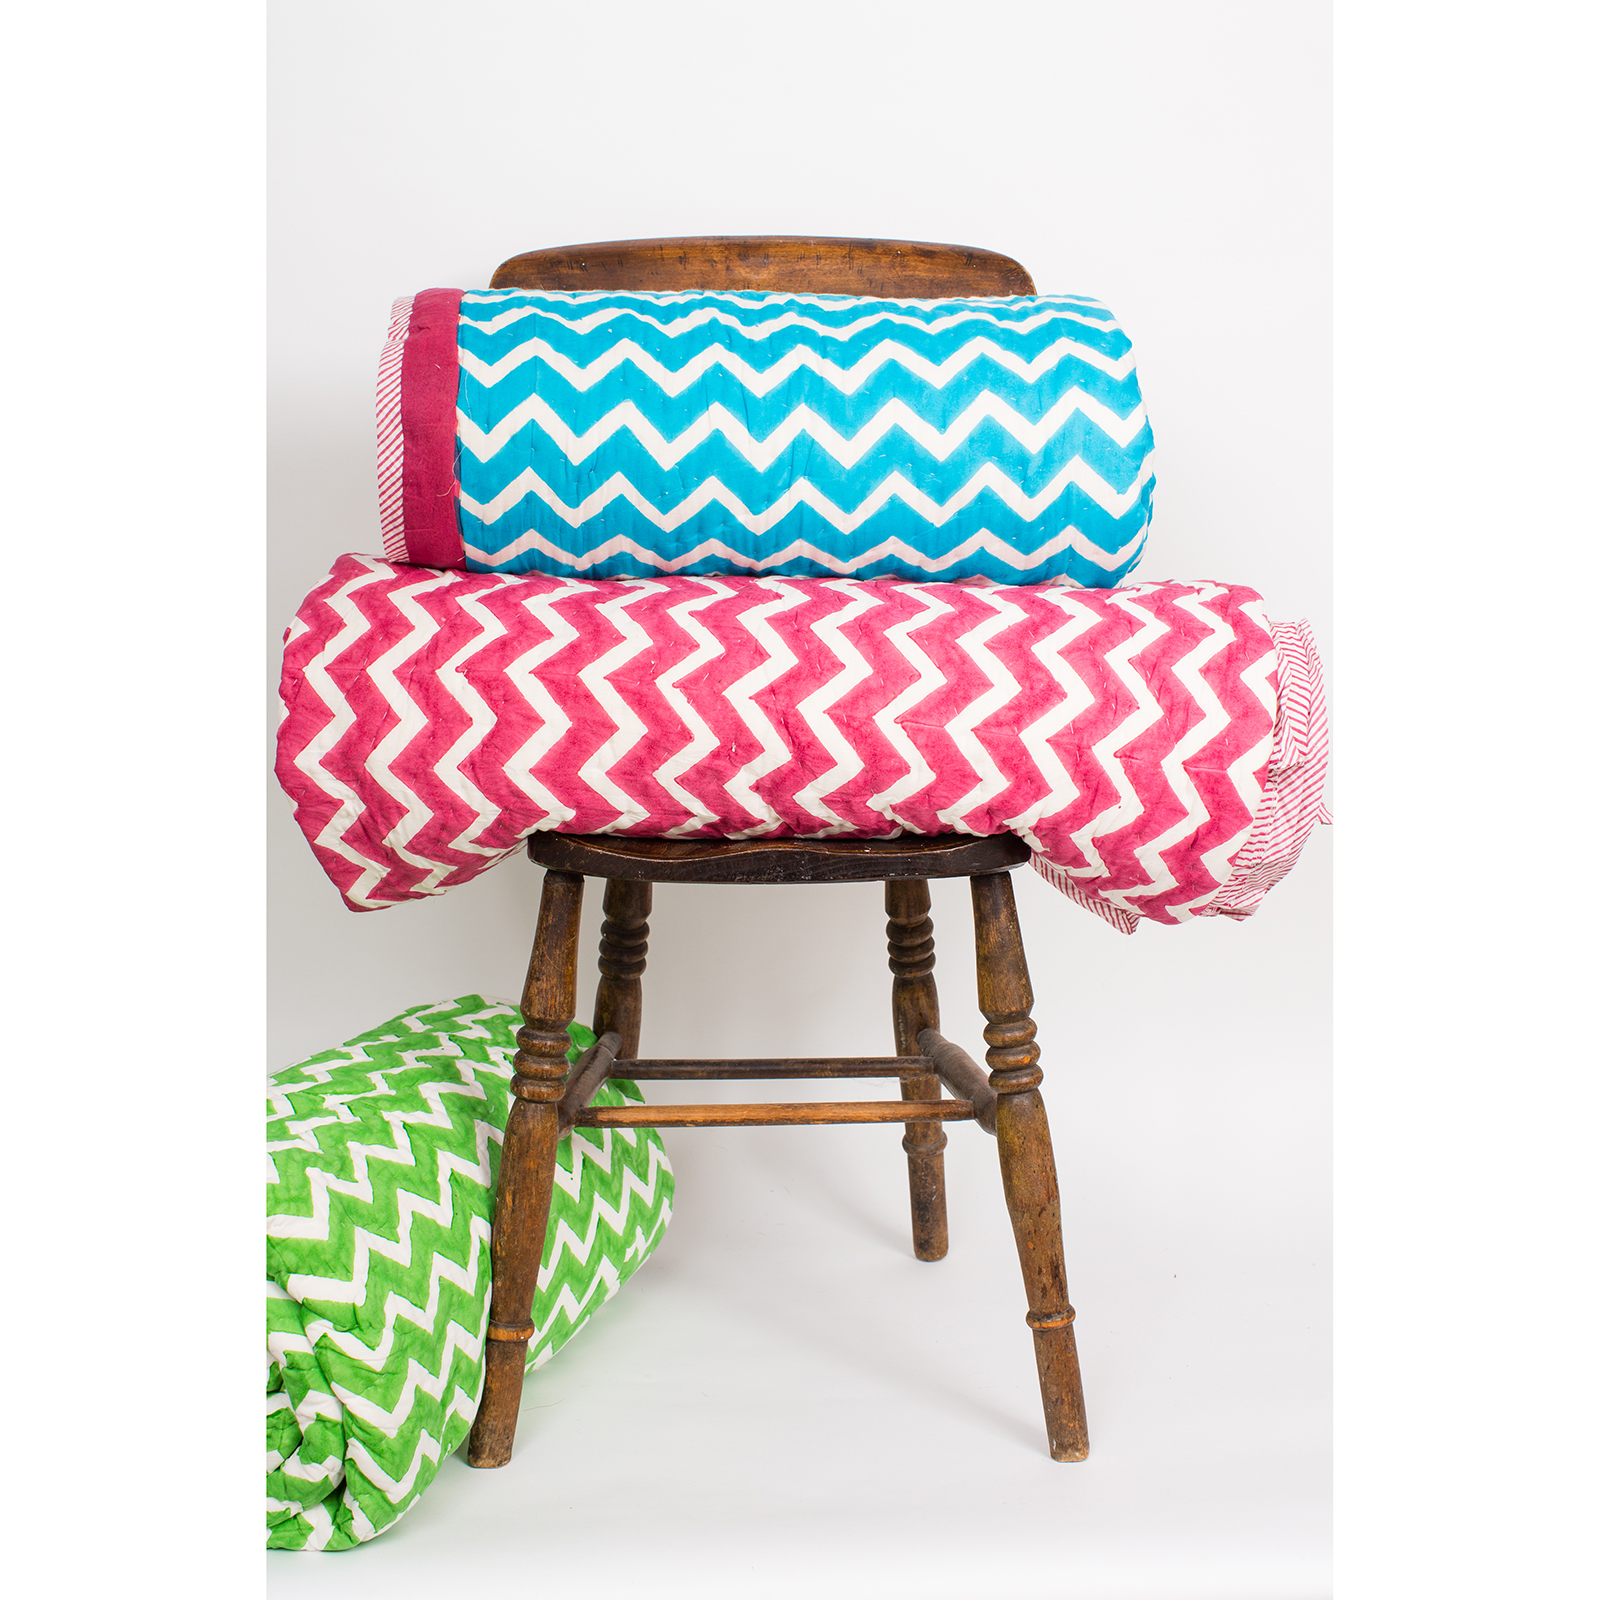 Picnic Rugs/Quilts